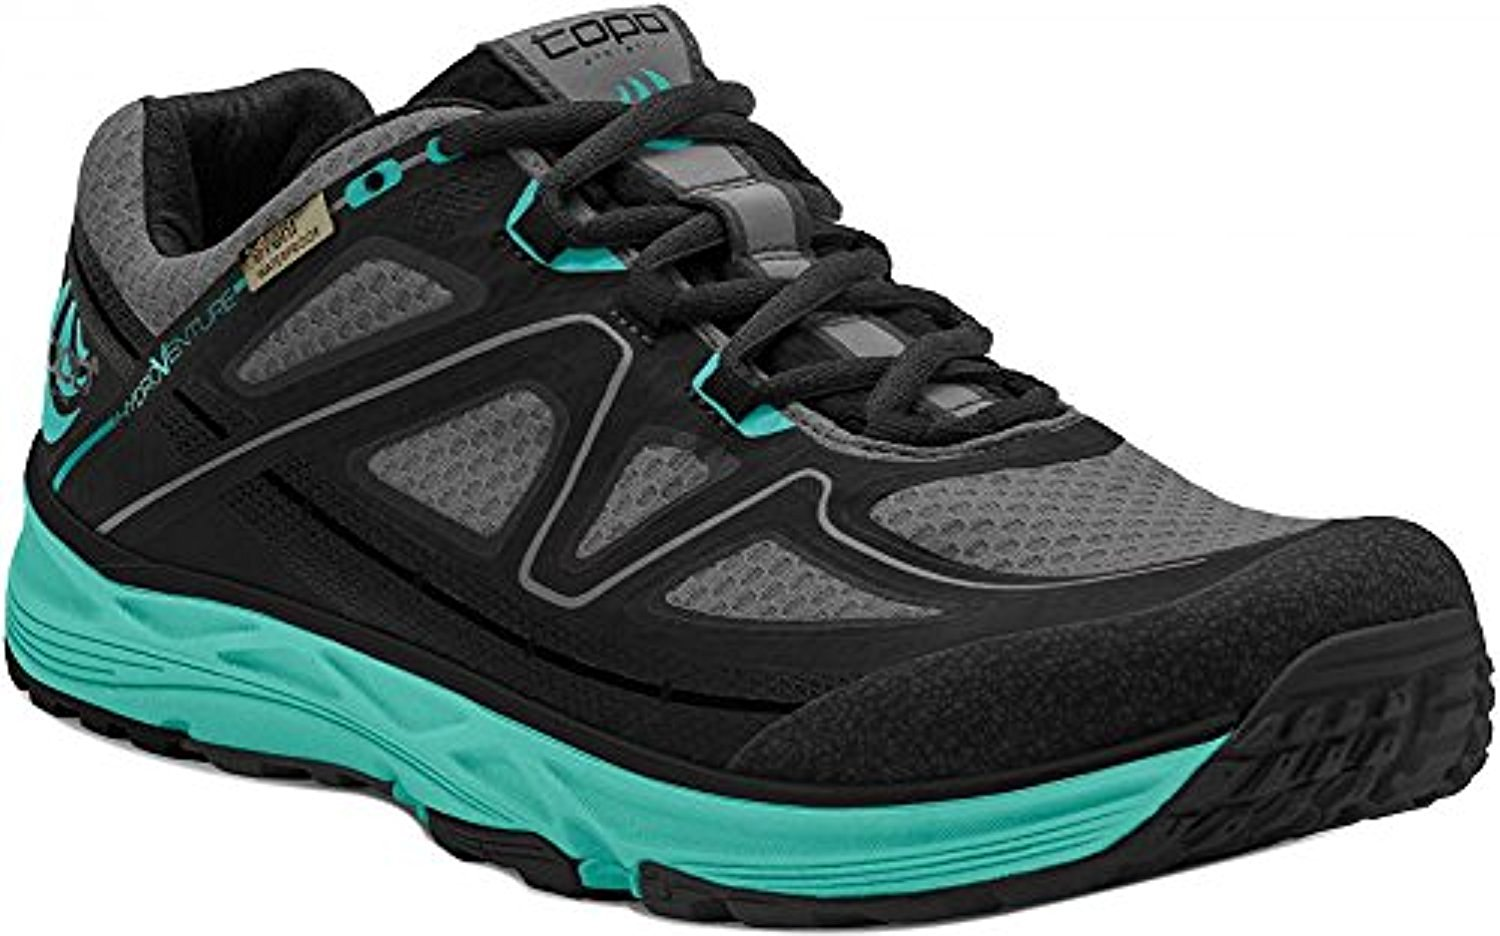 Topo Athletic Topo Women's Hydroventure Trail Running Shoes Black/Turquoise 8.5 & Headband